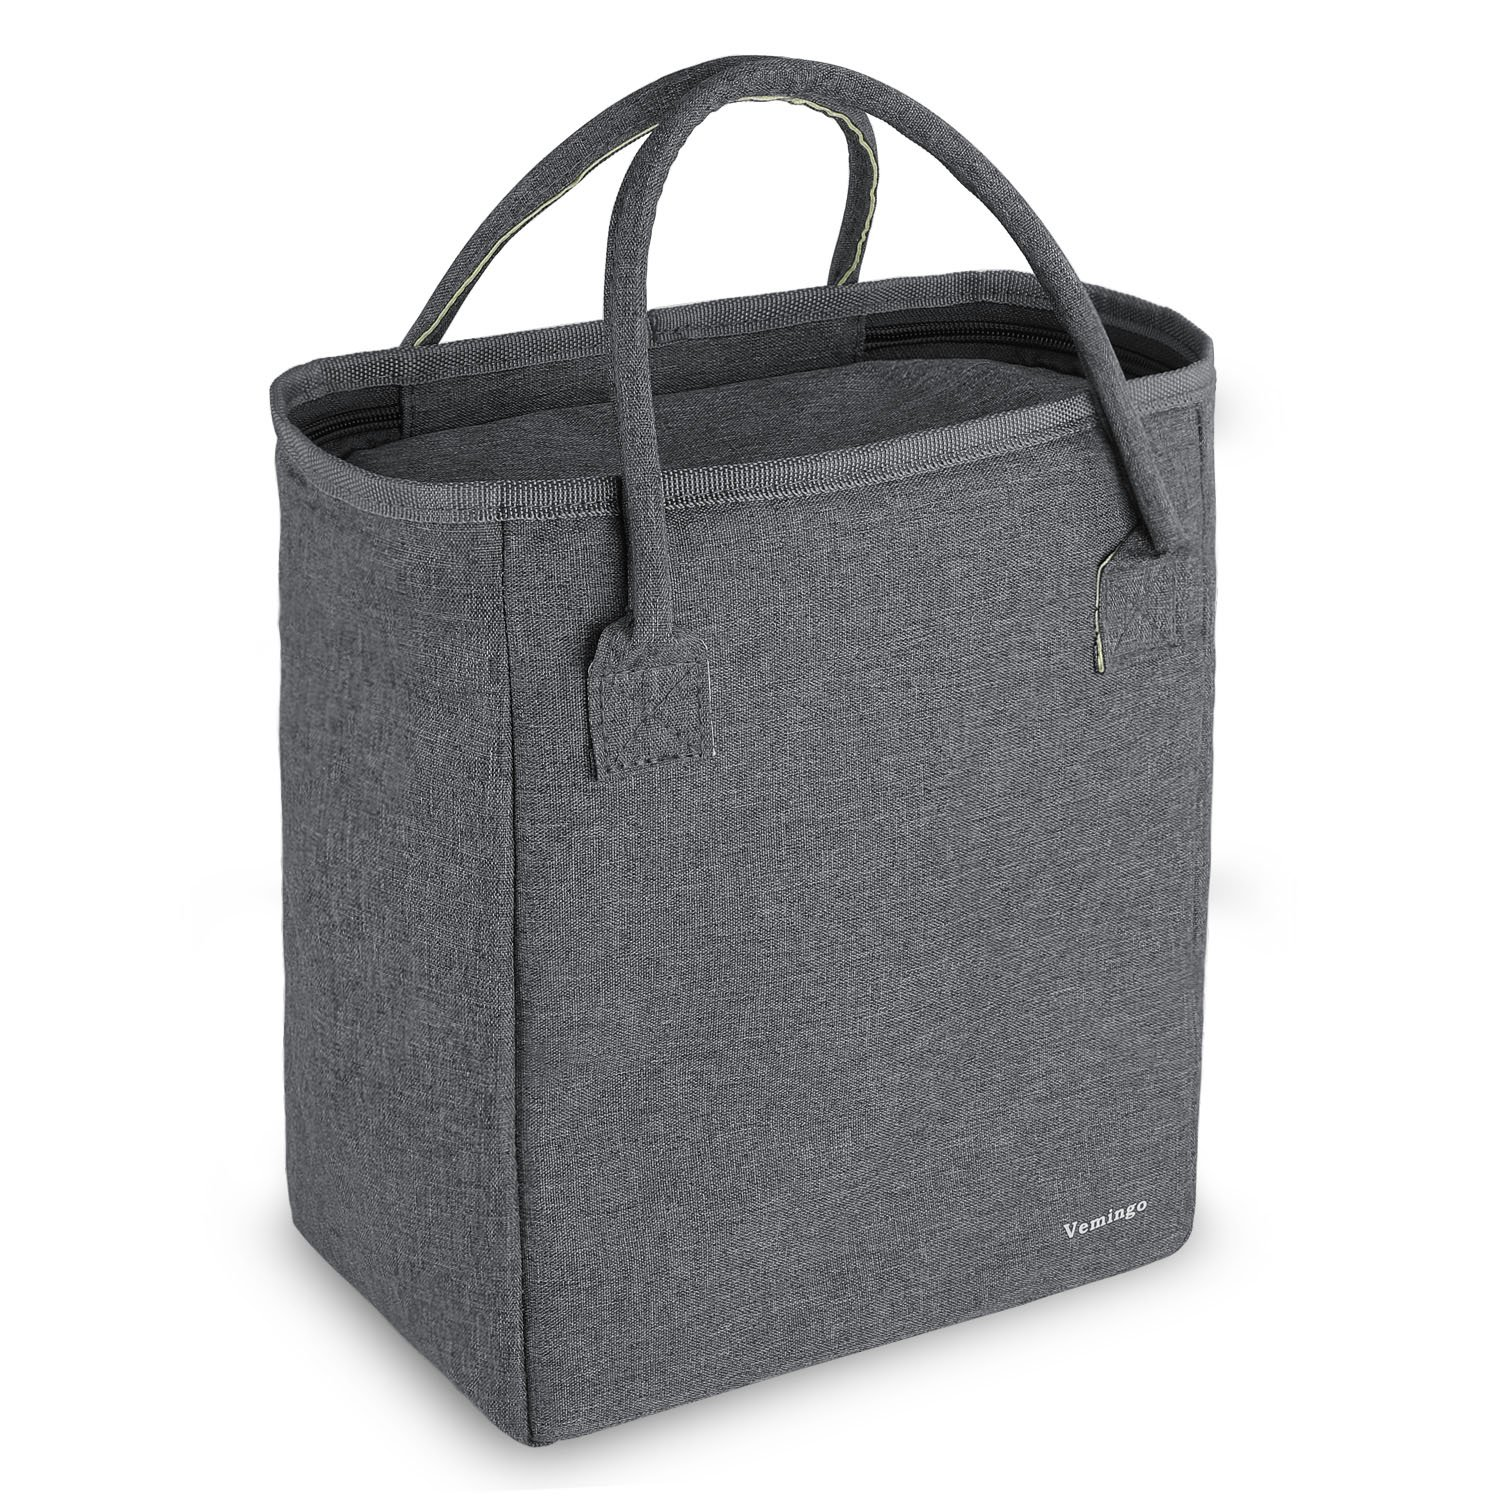 Vemingo Insulated Lunch Bag Cooler Lunch Tote Large Capacity Thermal Lunch Box for Women Men Adults Kids,10.1 x 8.6 x 5.5 IN, Gray